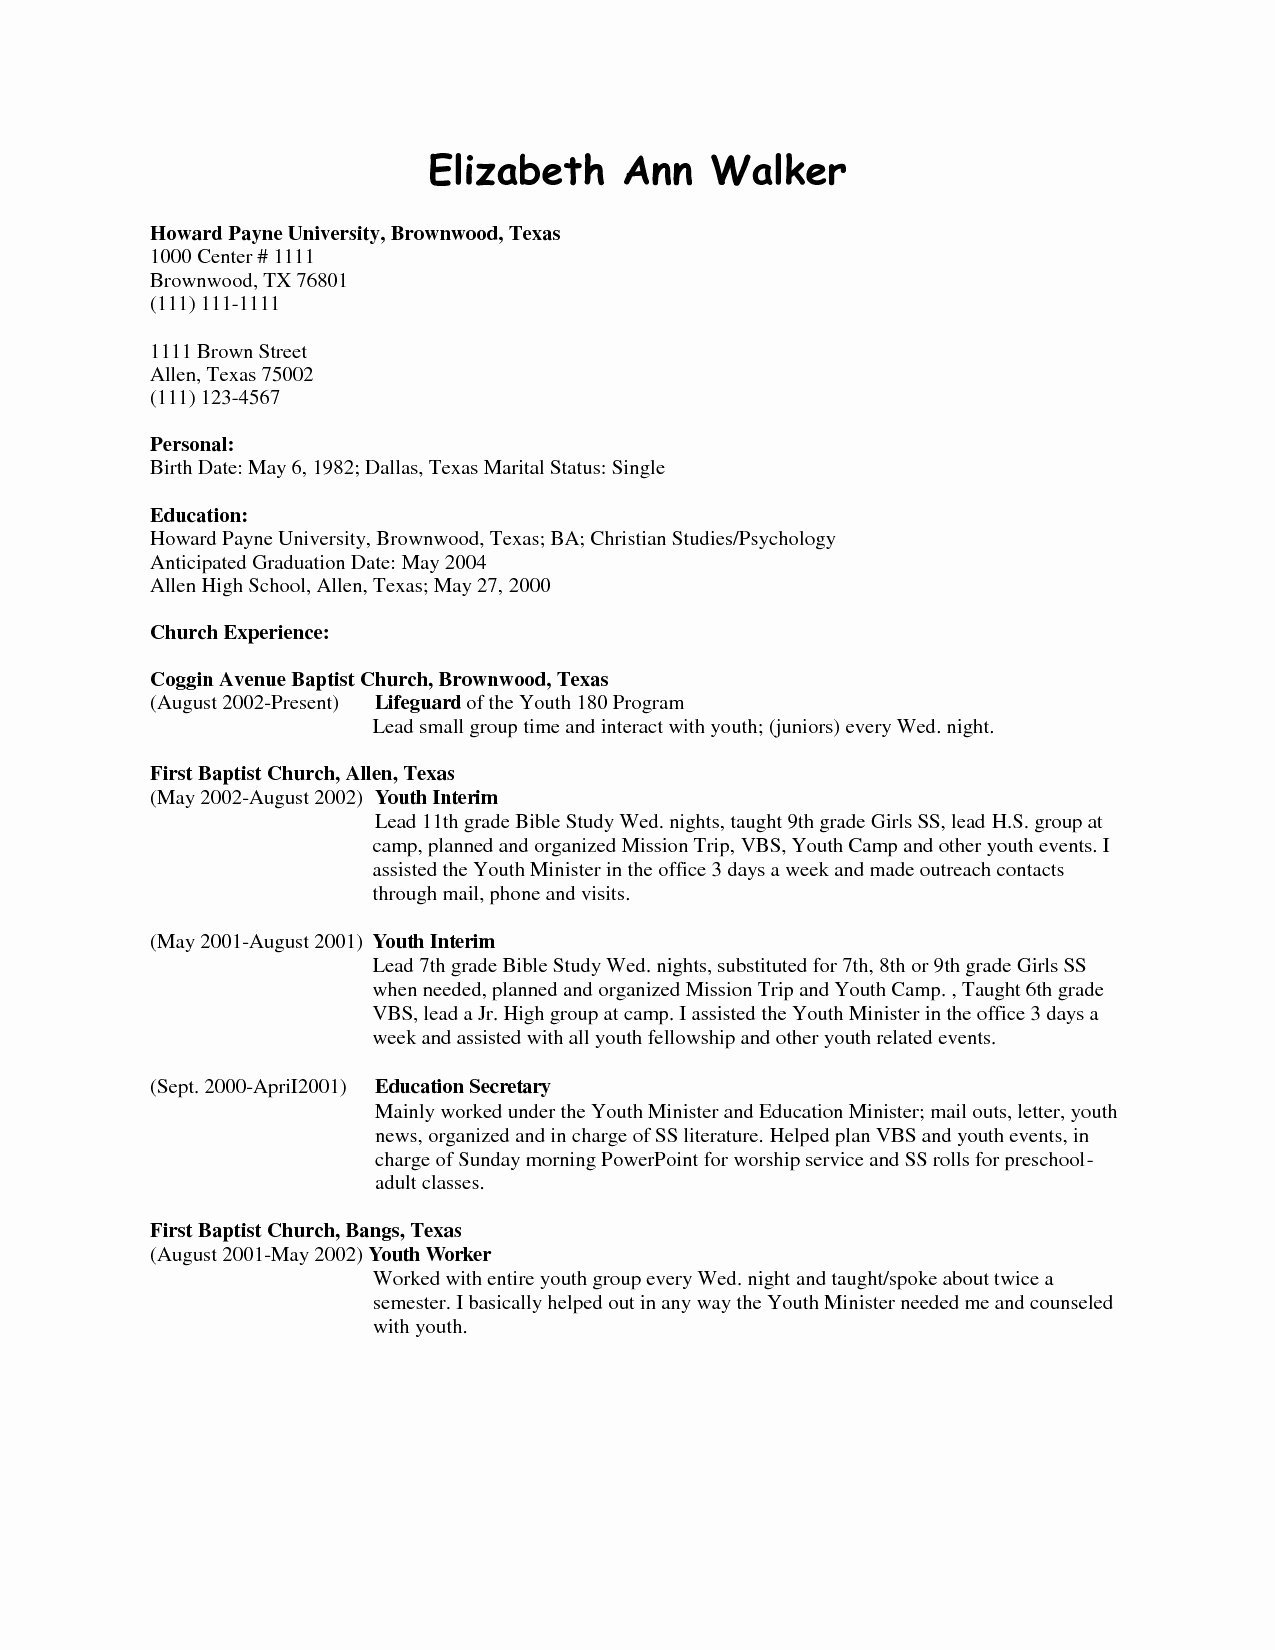 Cleaning Services Job Description Example Resume for